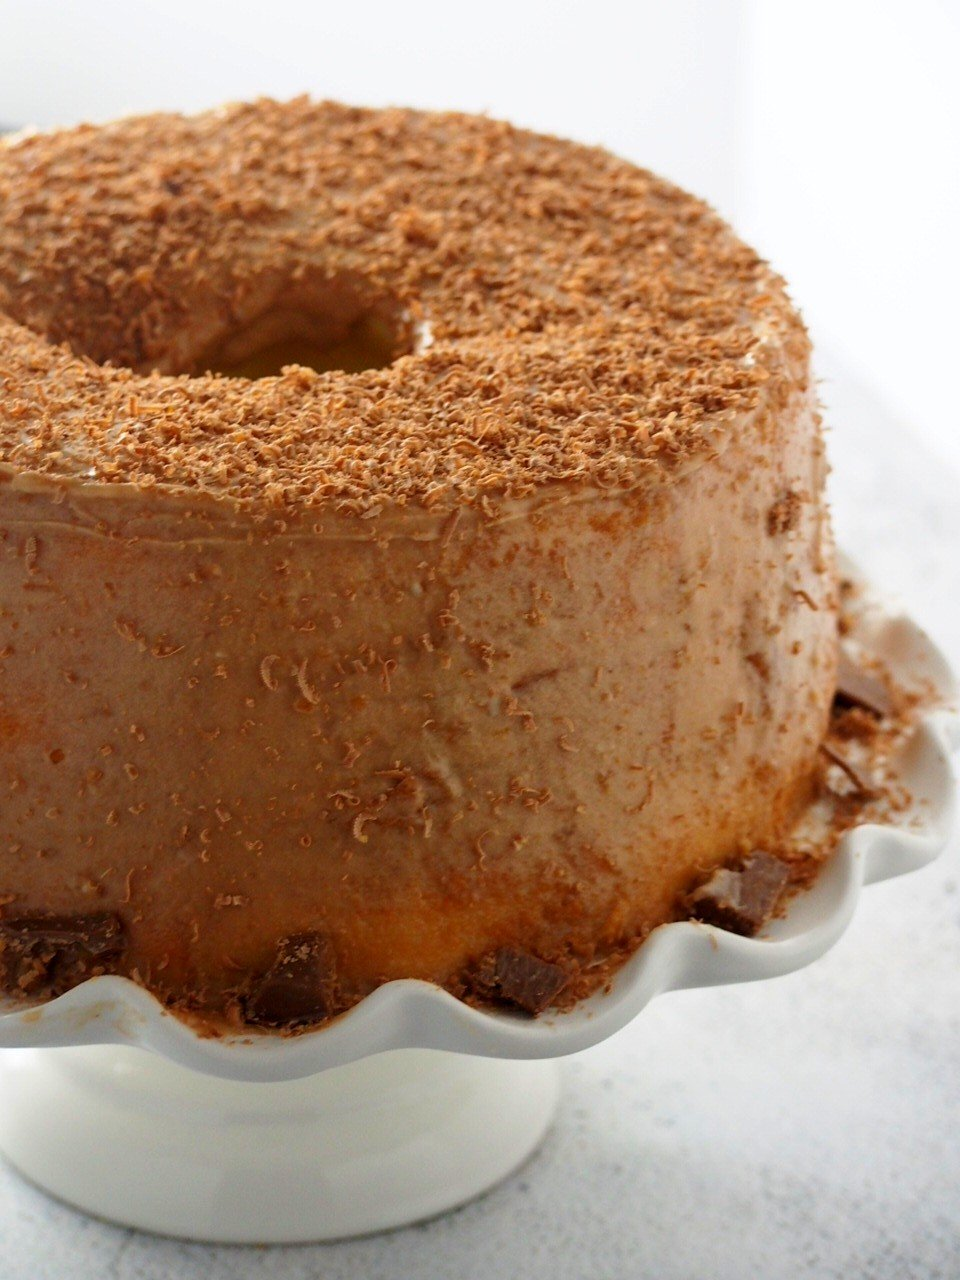 Close up shot of Chiffon cake with mocha icing.